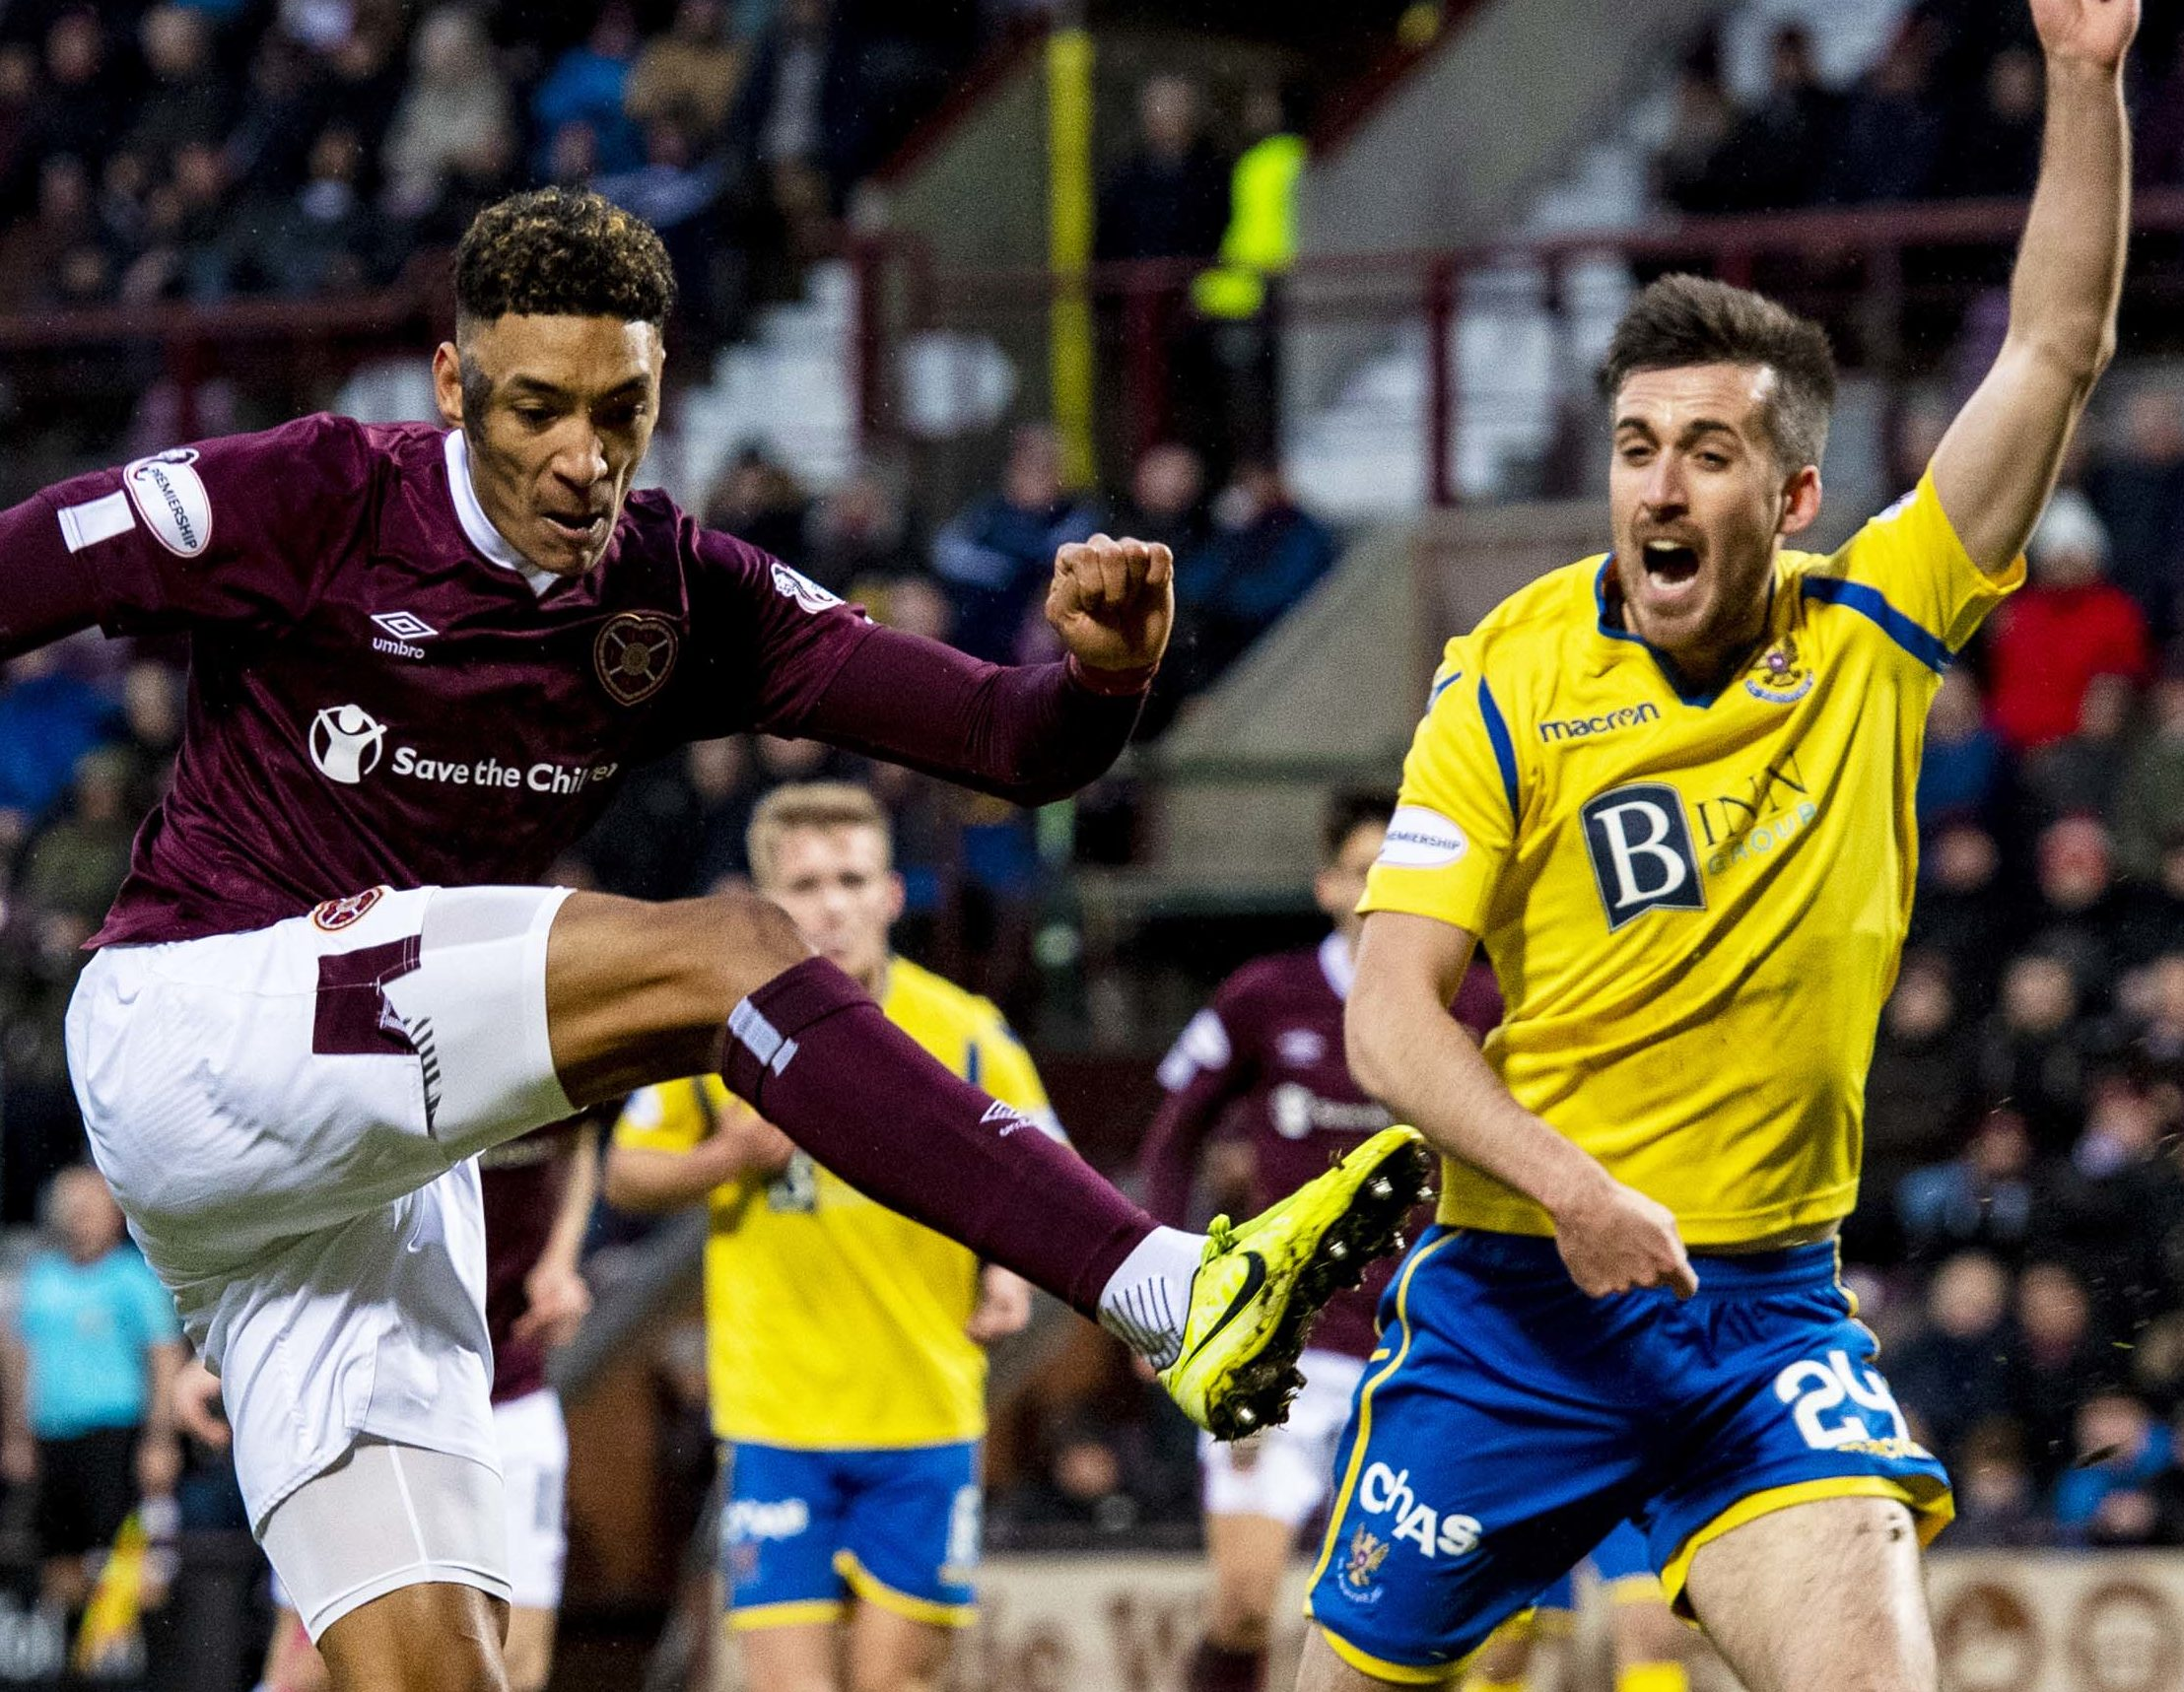 Callum Booth in action at Tynecastle.